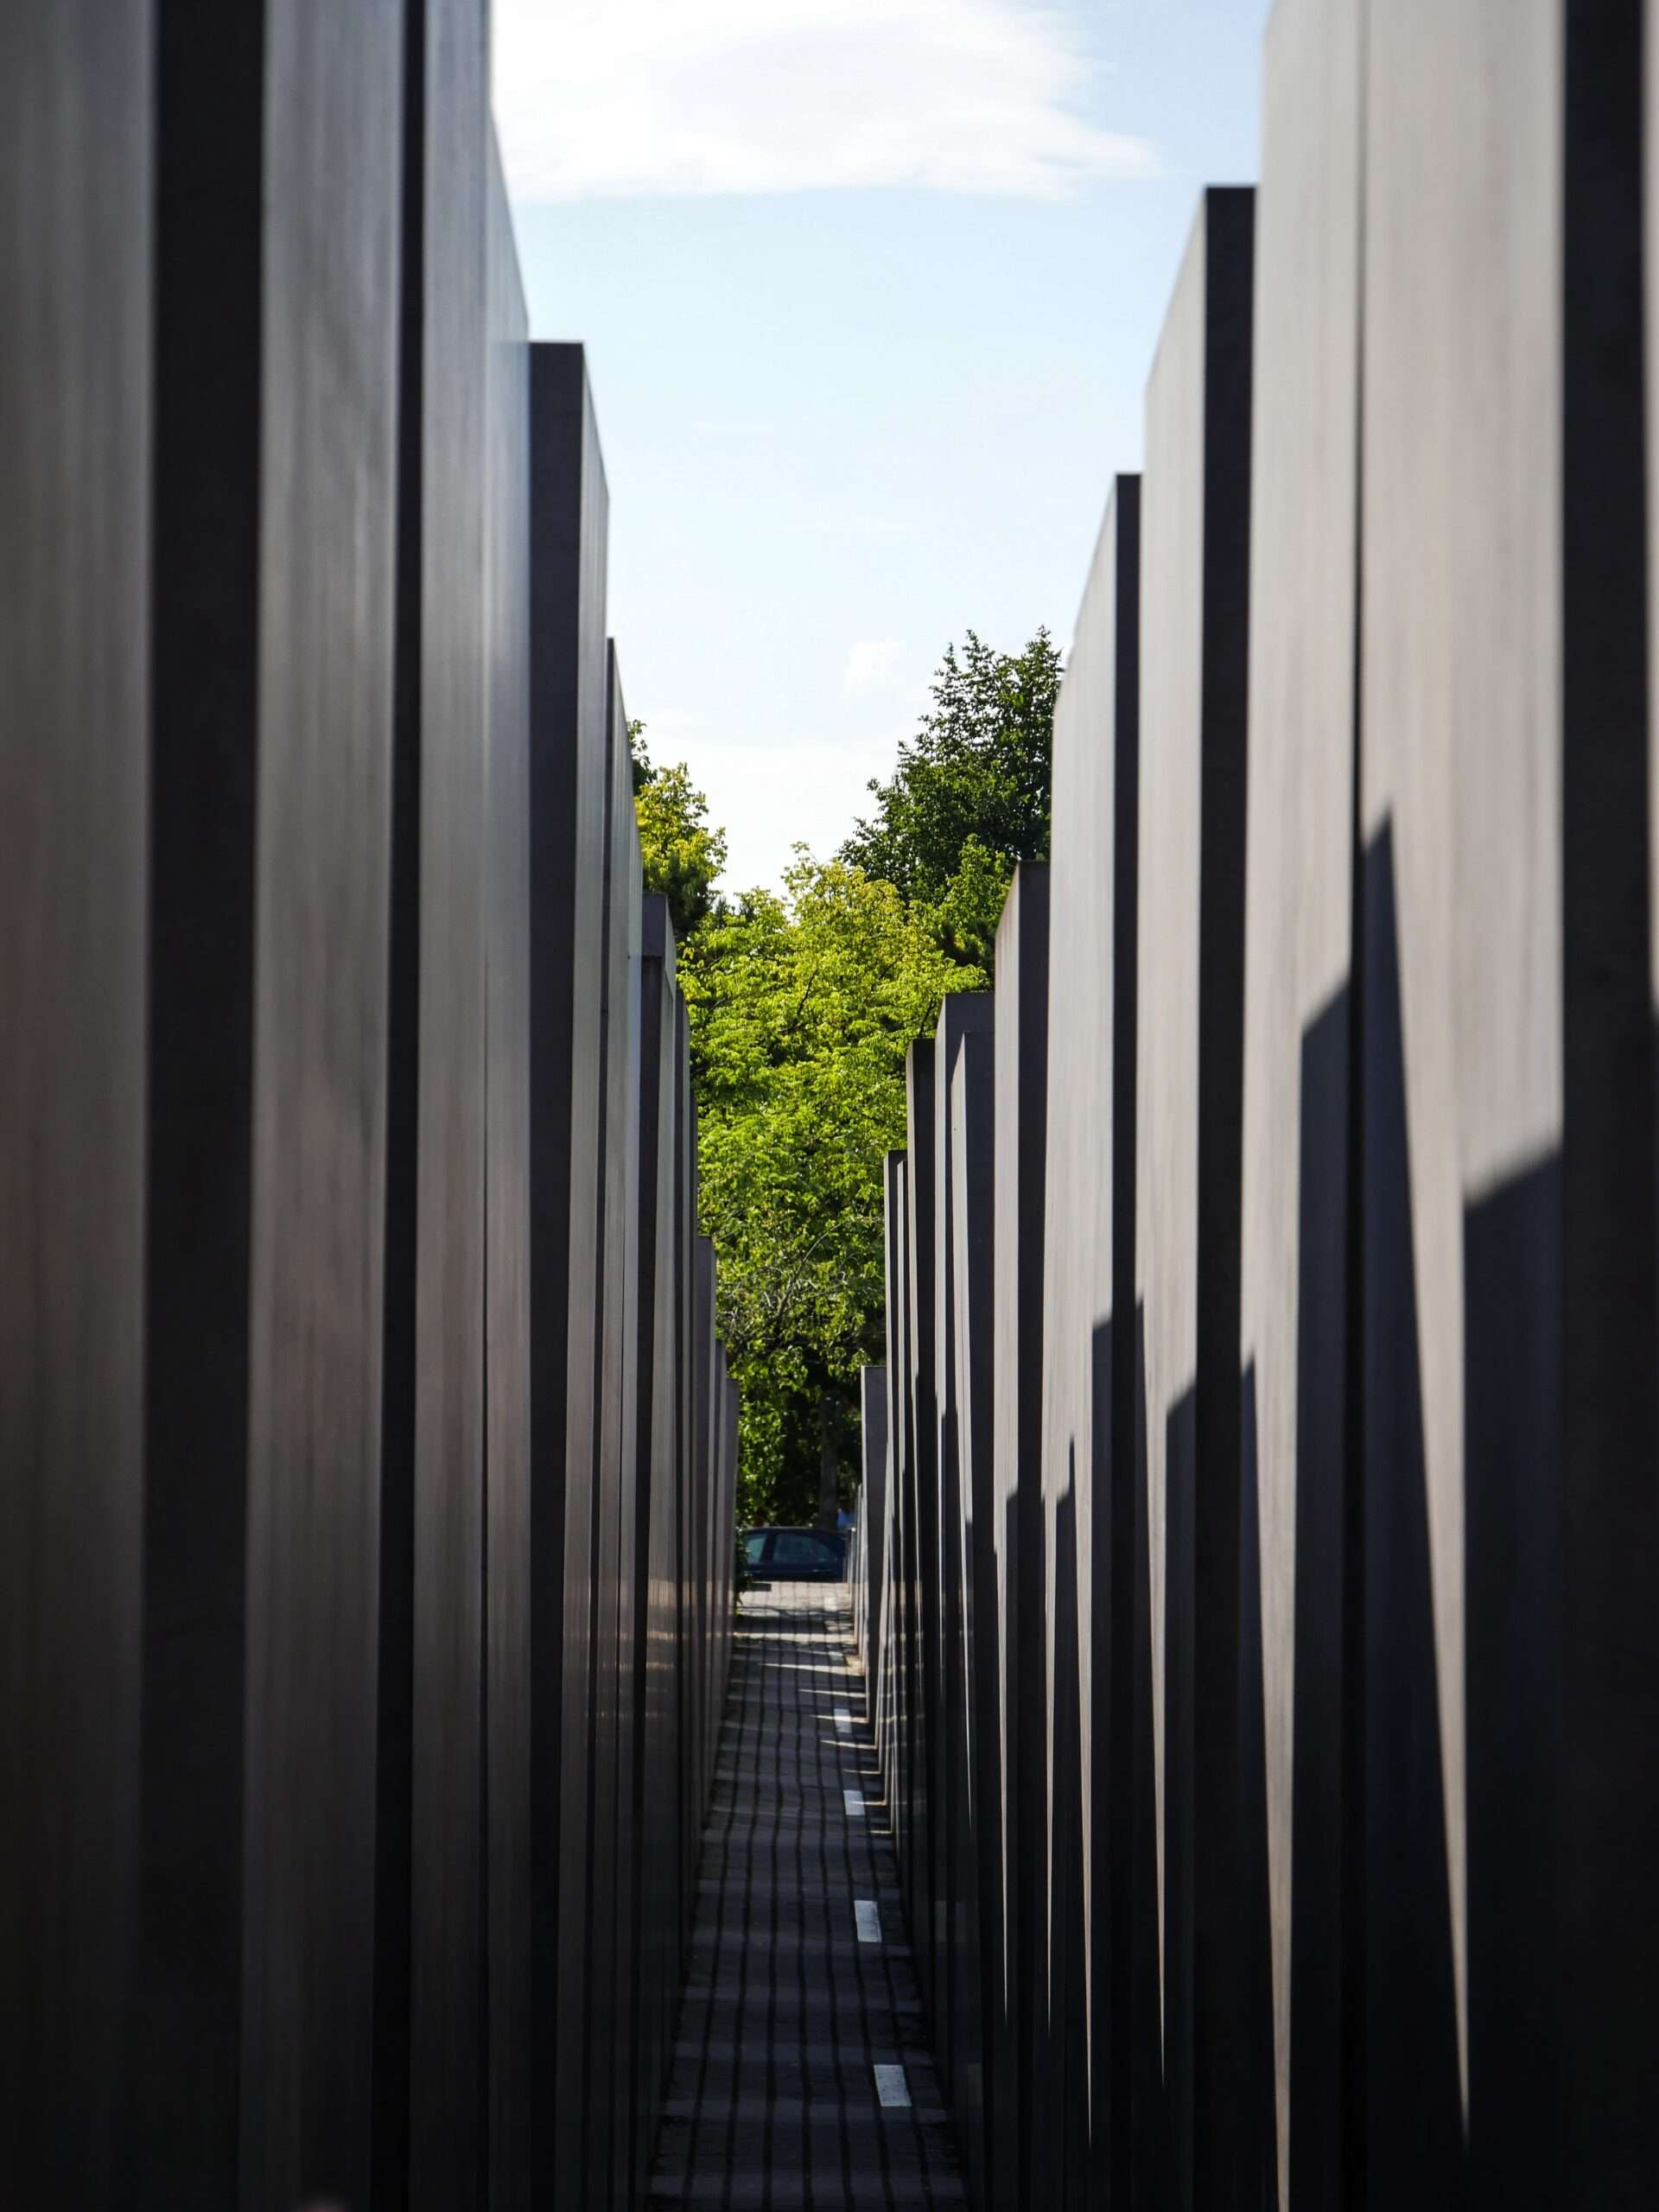 Monument to the Murdered Jews of Europe, in Berlin